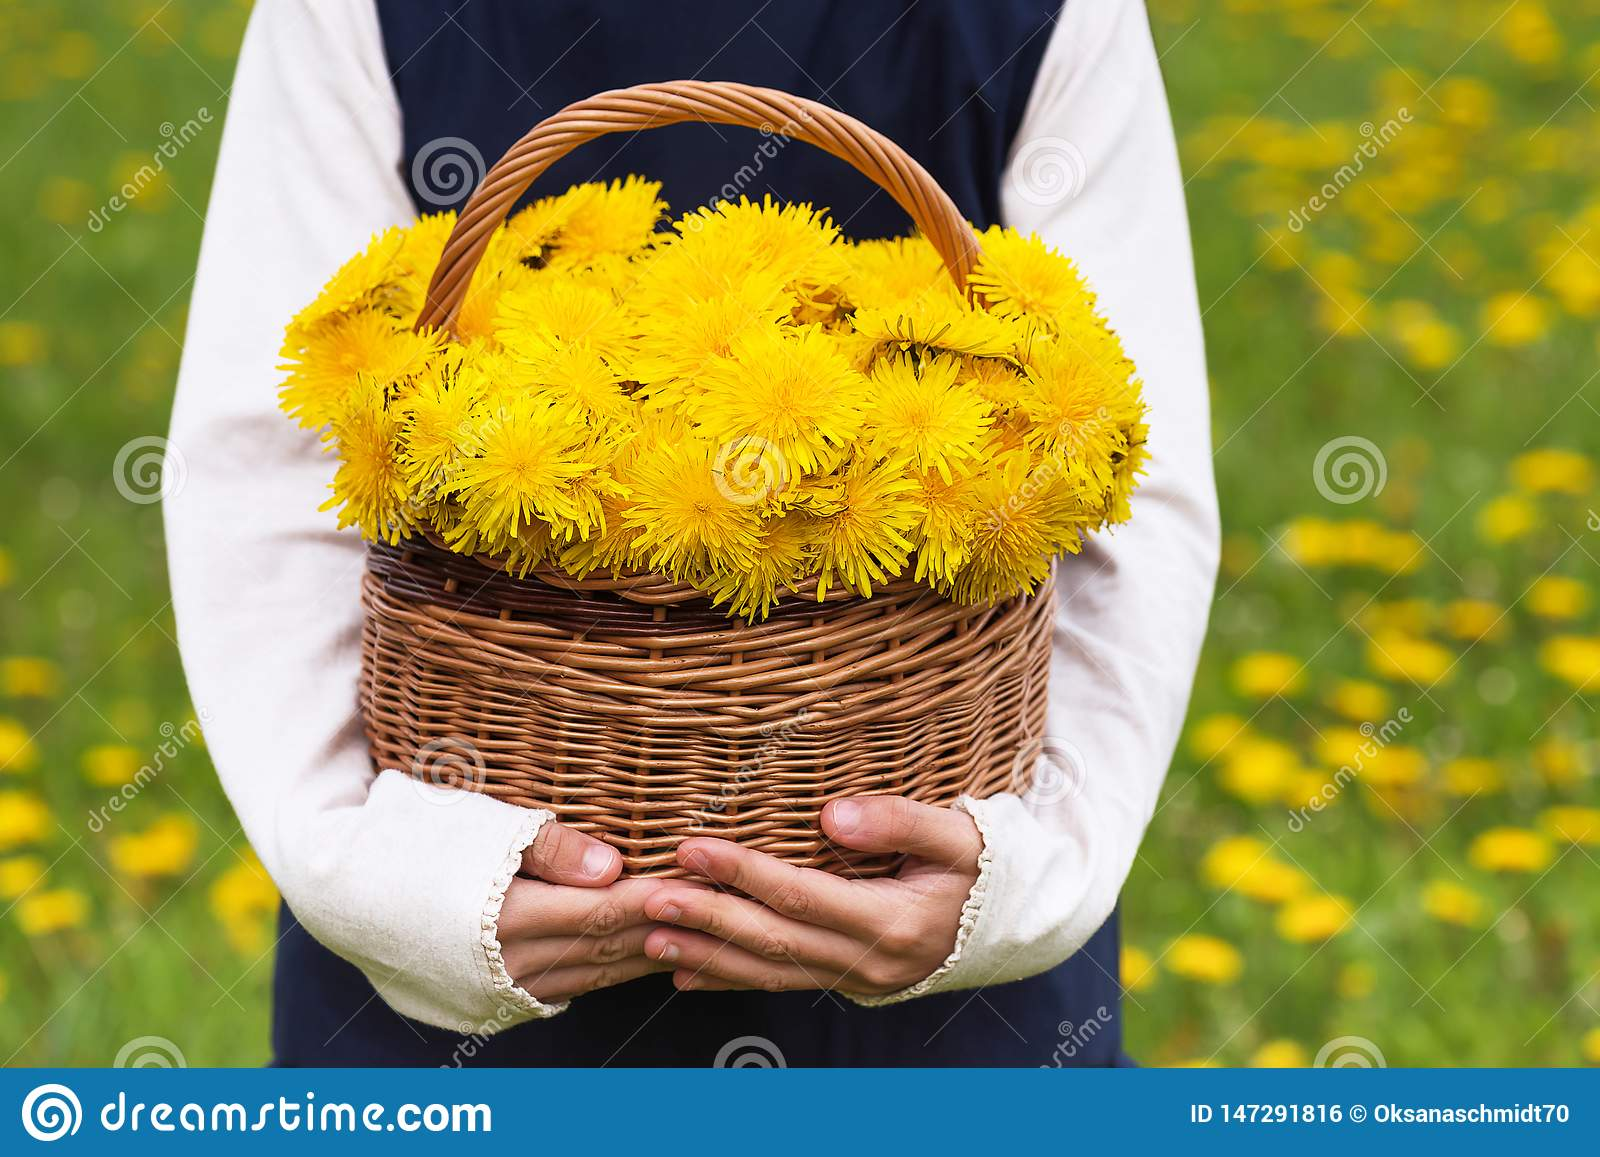 Child holding basket with dandelion yellow flowers.